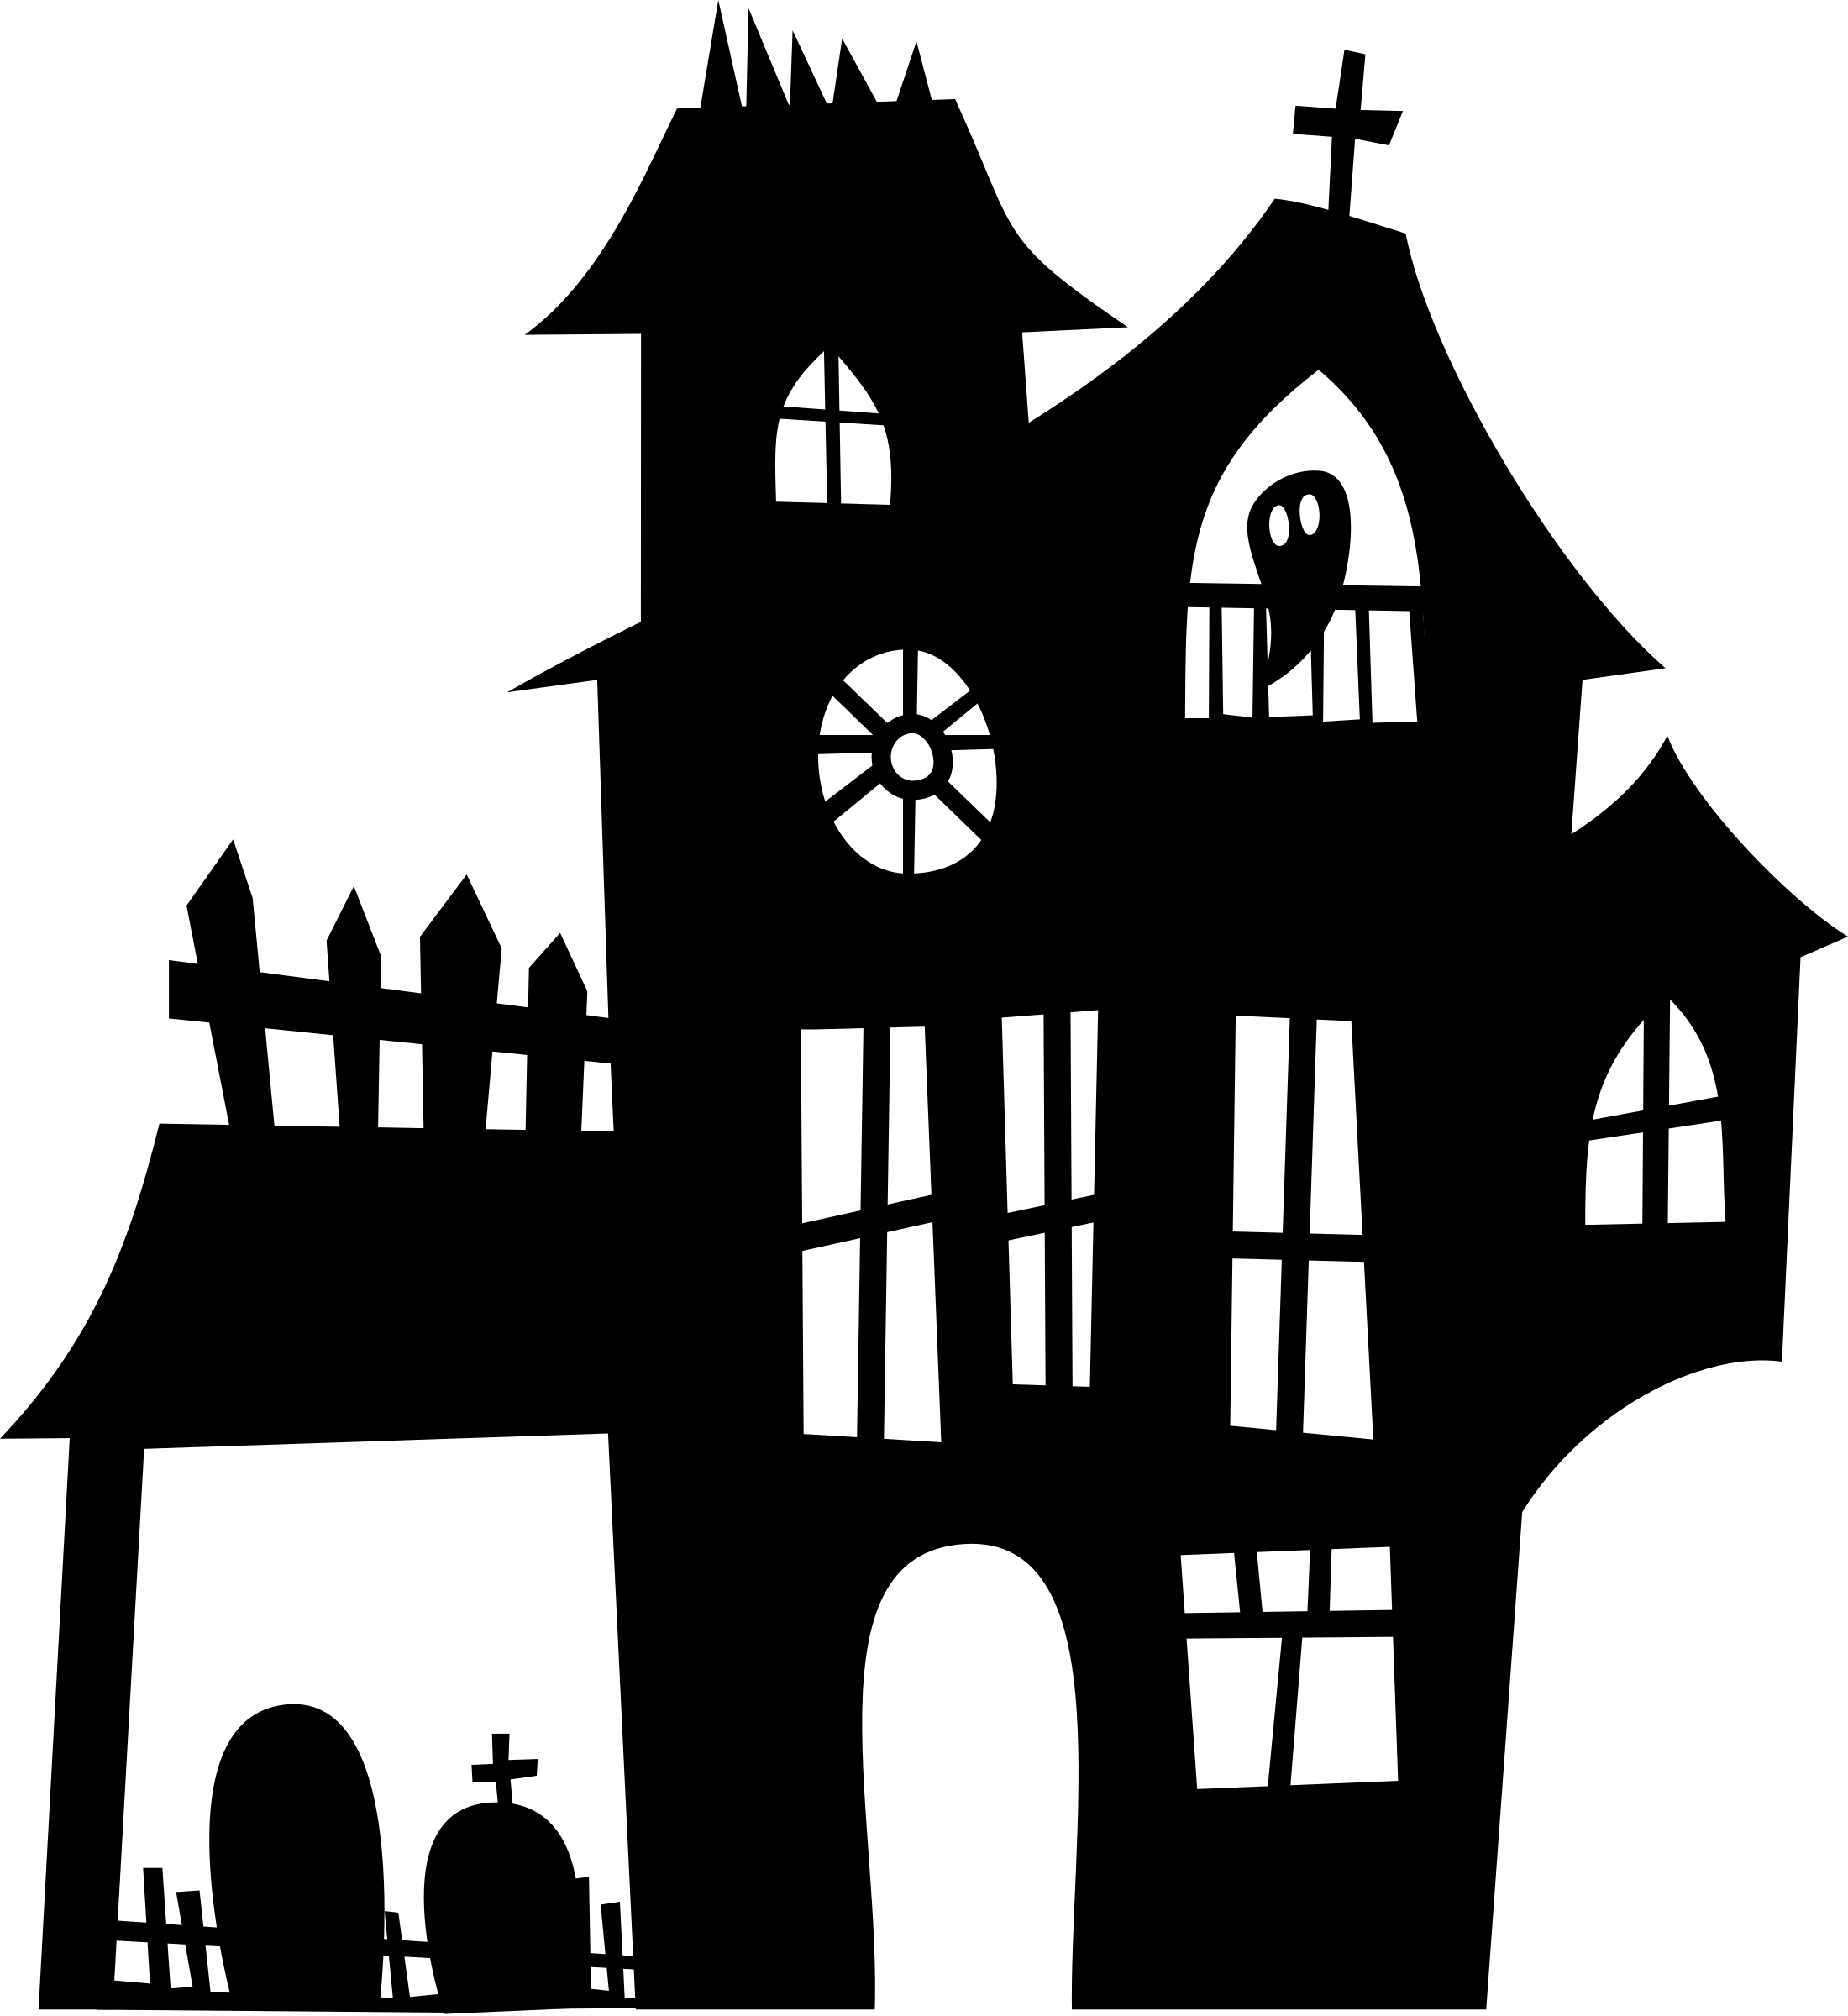 clipart download Mansion clipart silhouette. Haunted big image png.